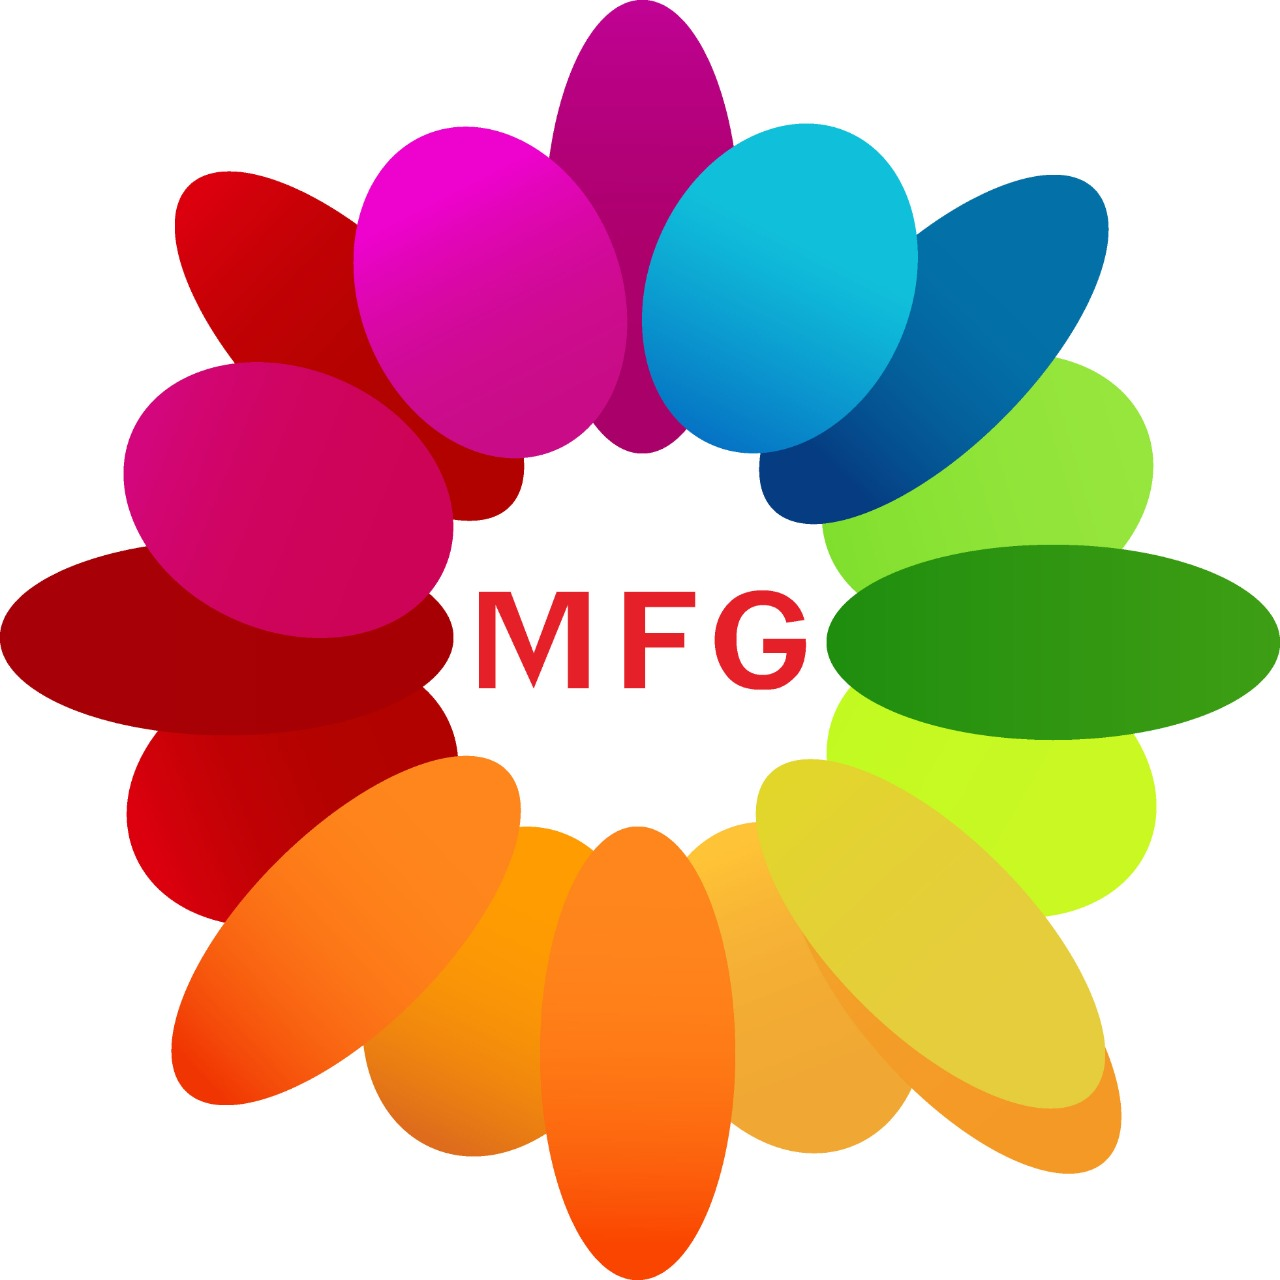 Bunch of 30 yellow roses